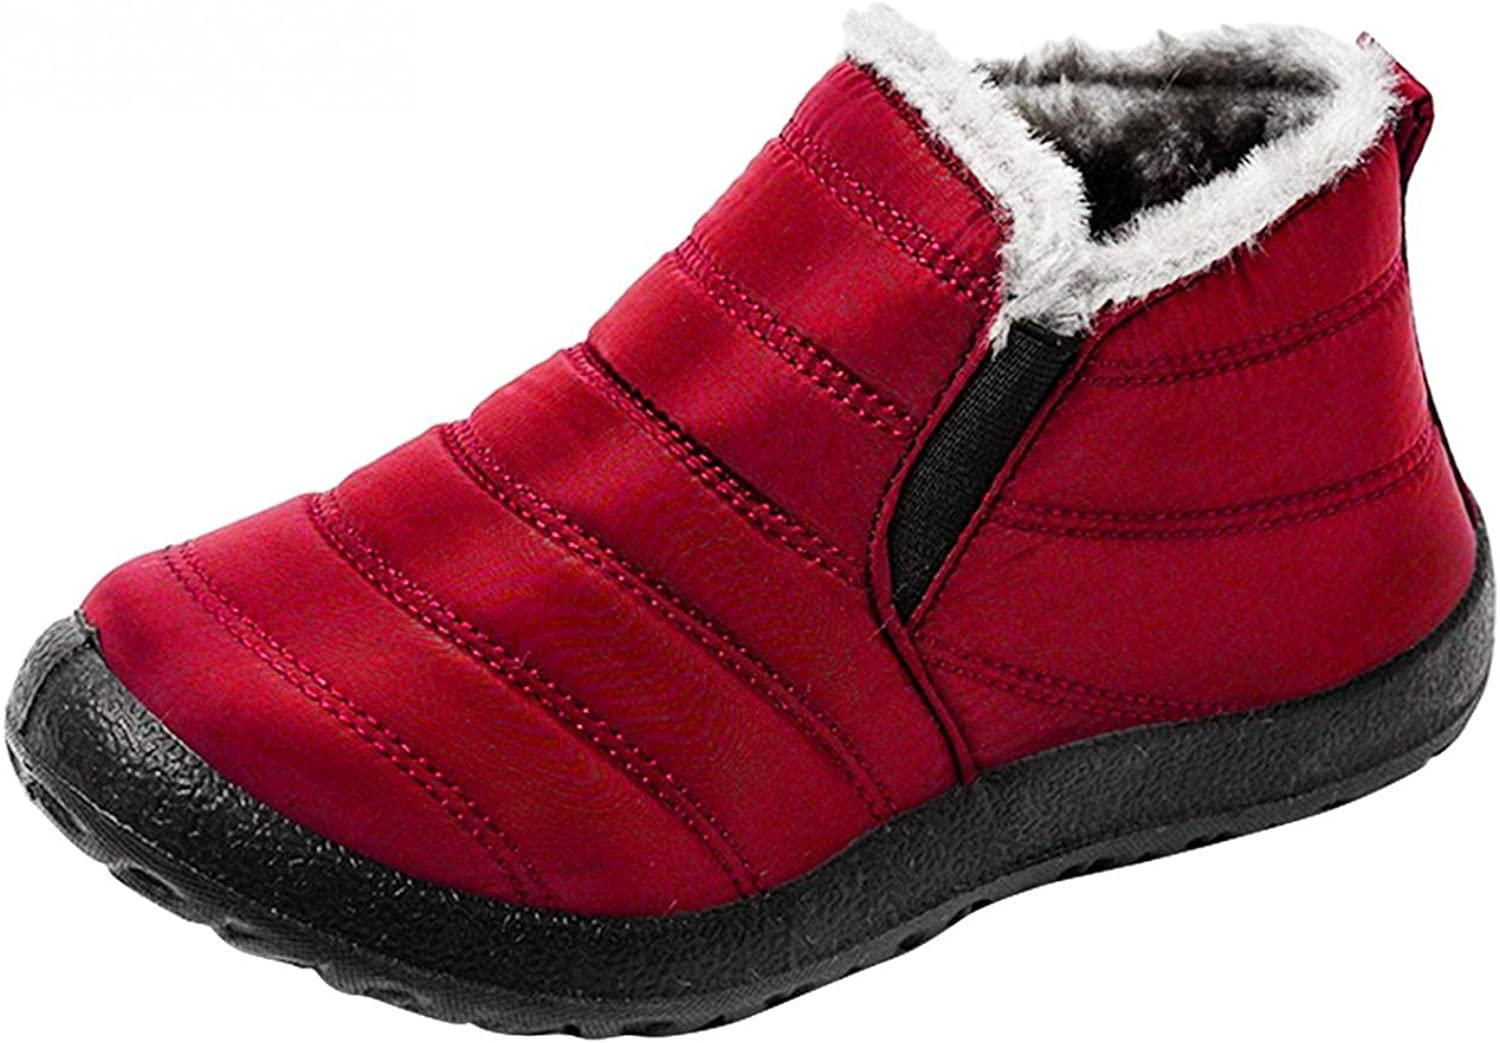 Gibobby Womens Winter Snow Boots Fur Lined Warm Ankle Boots Slip